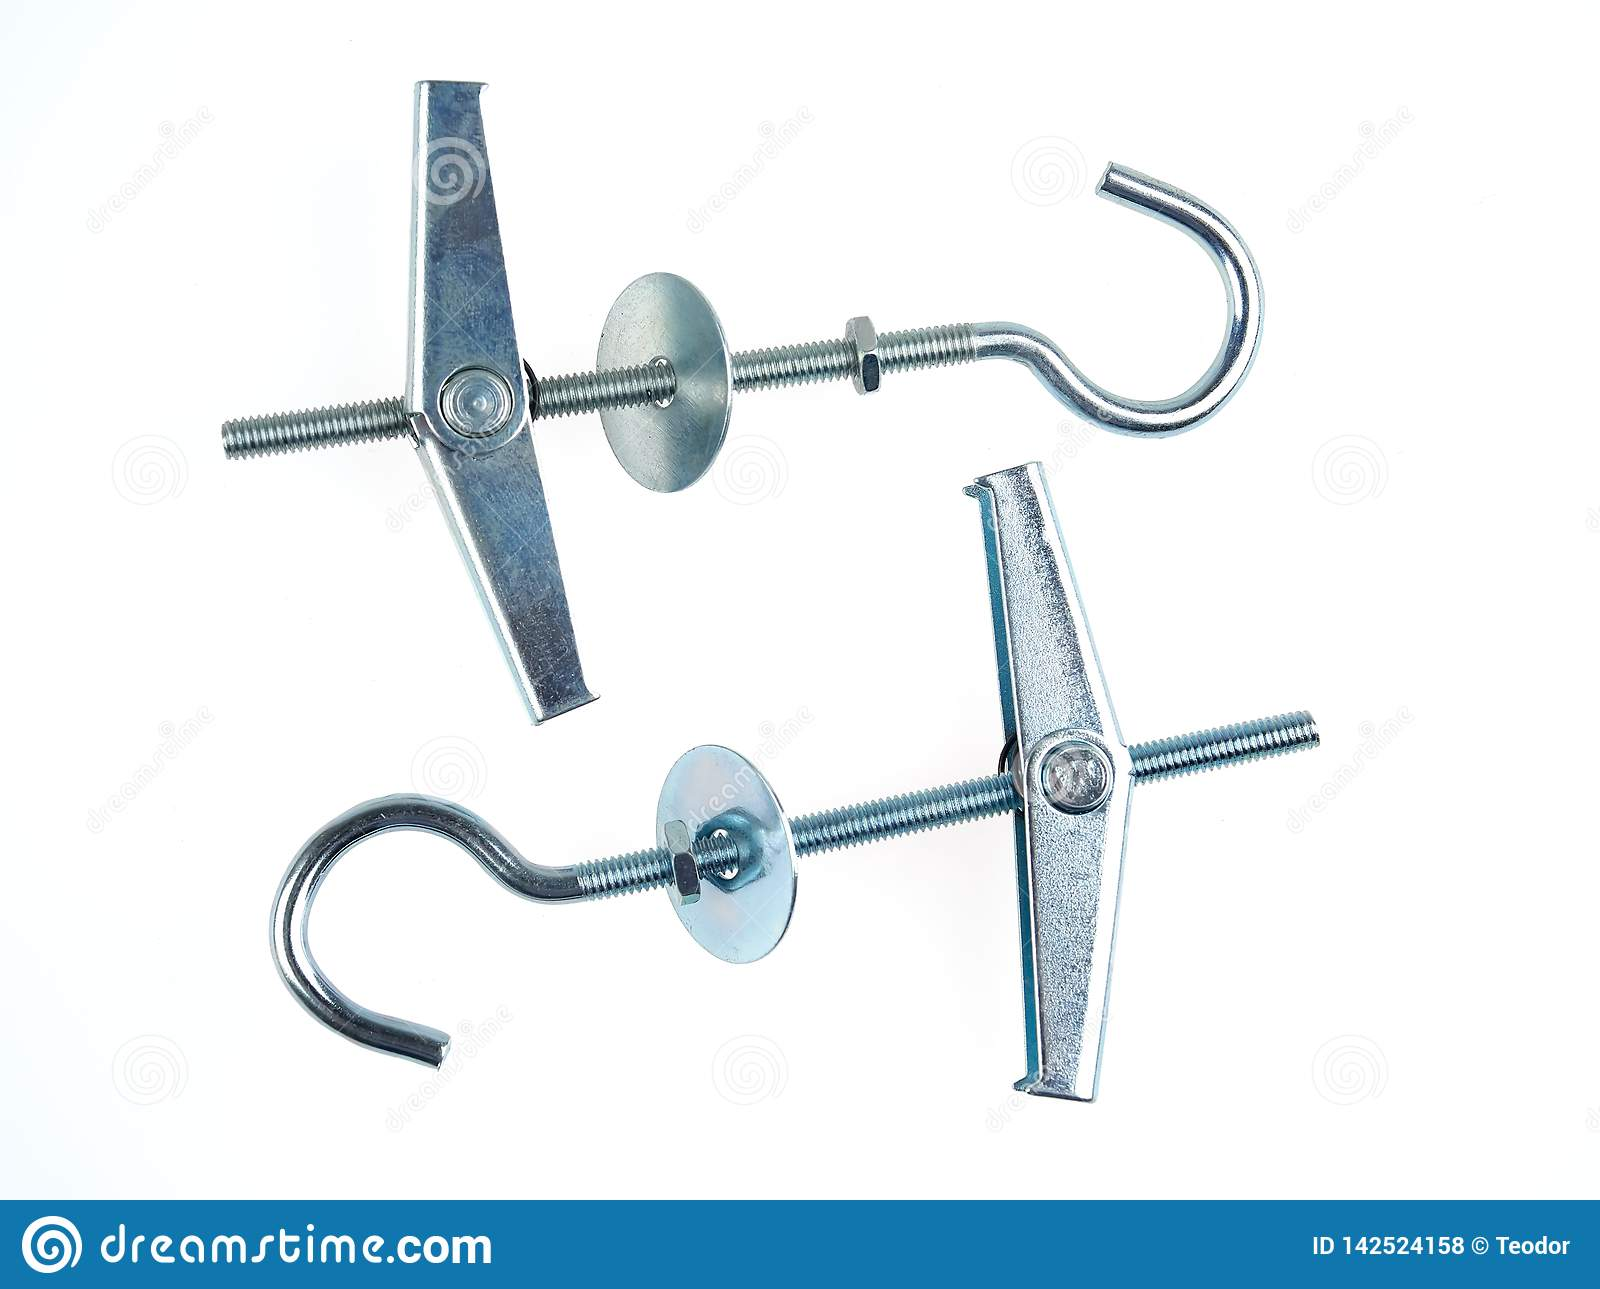 Drywall Ceiling Anchors